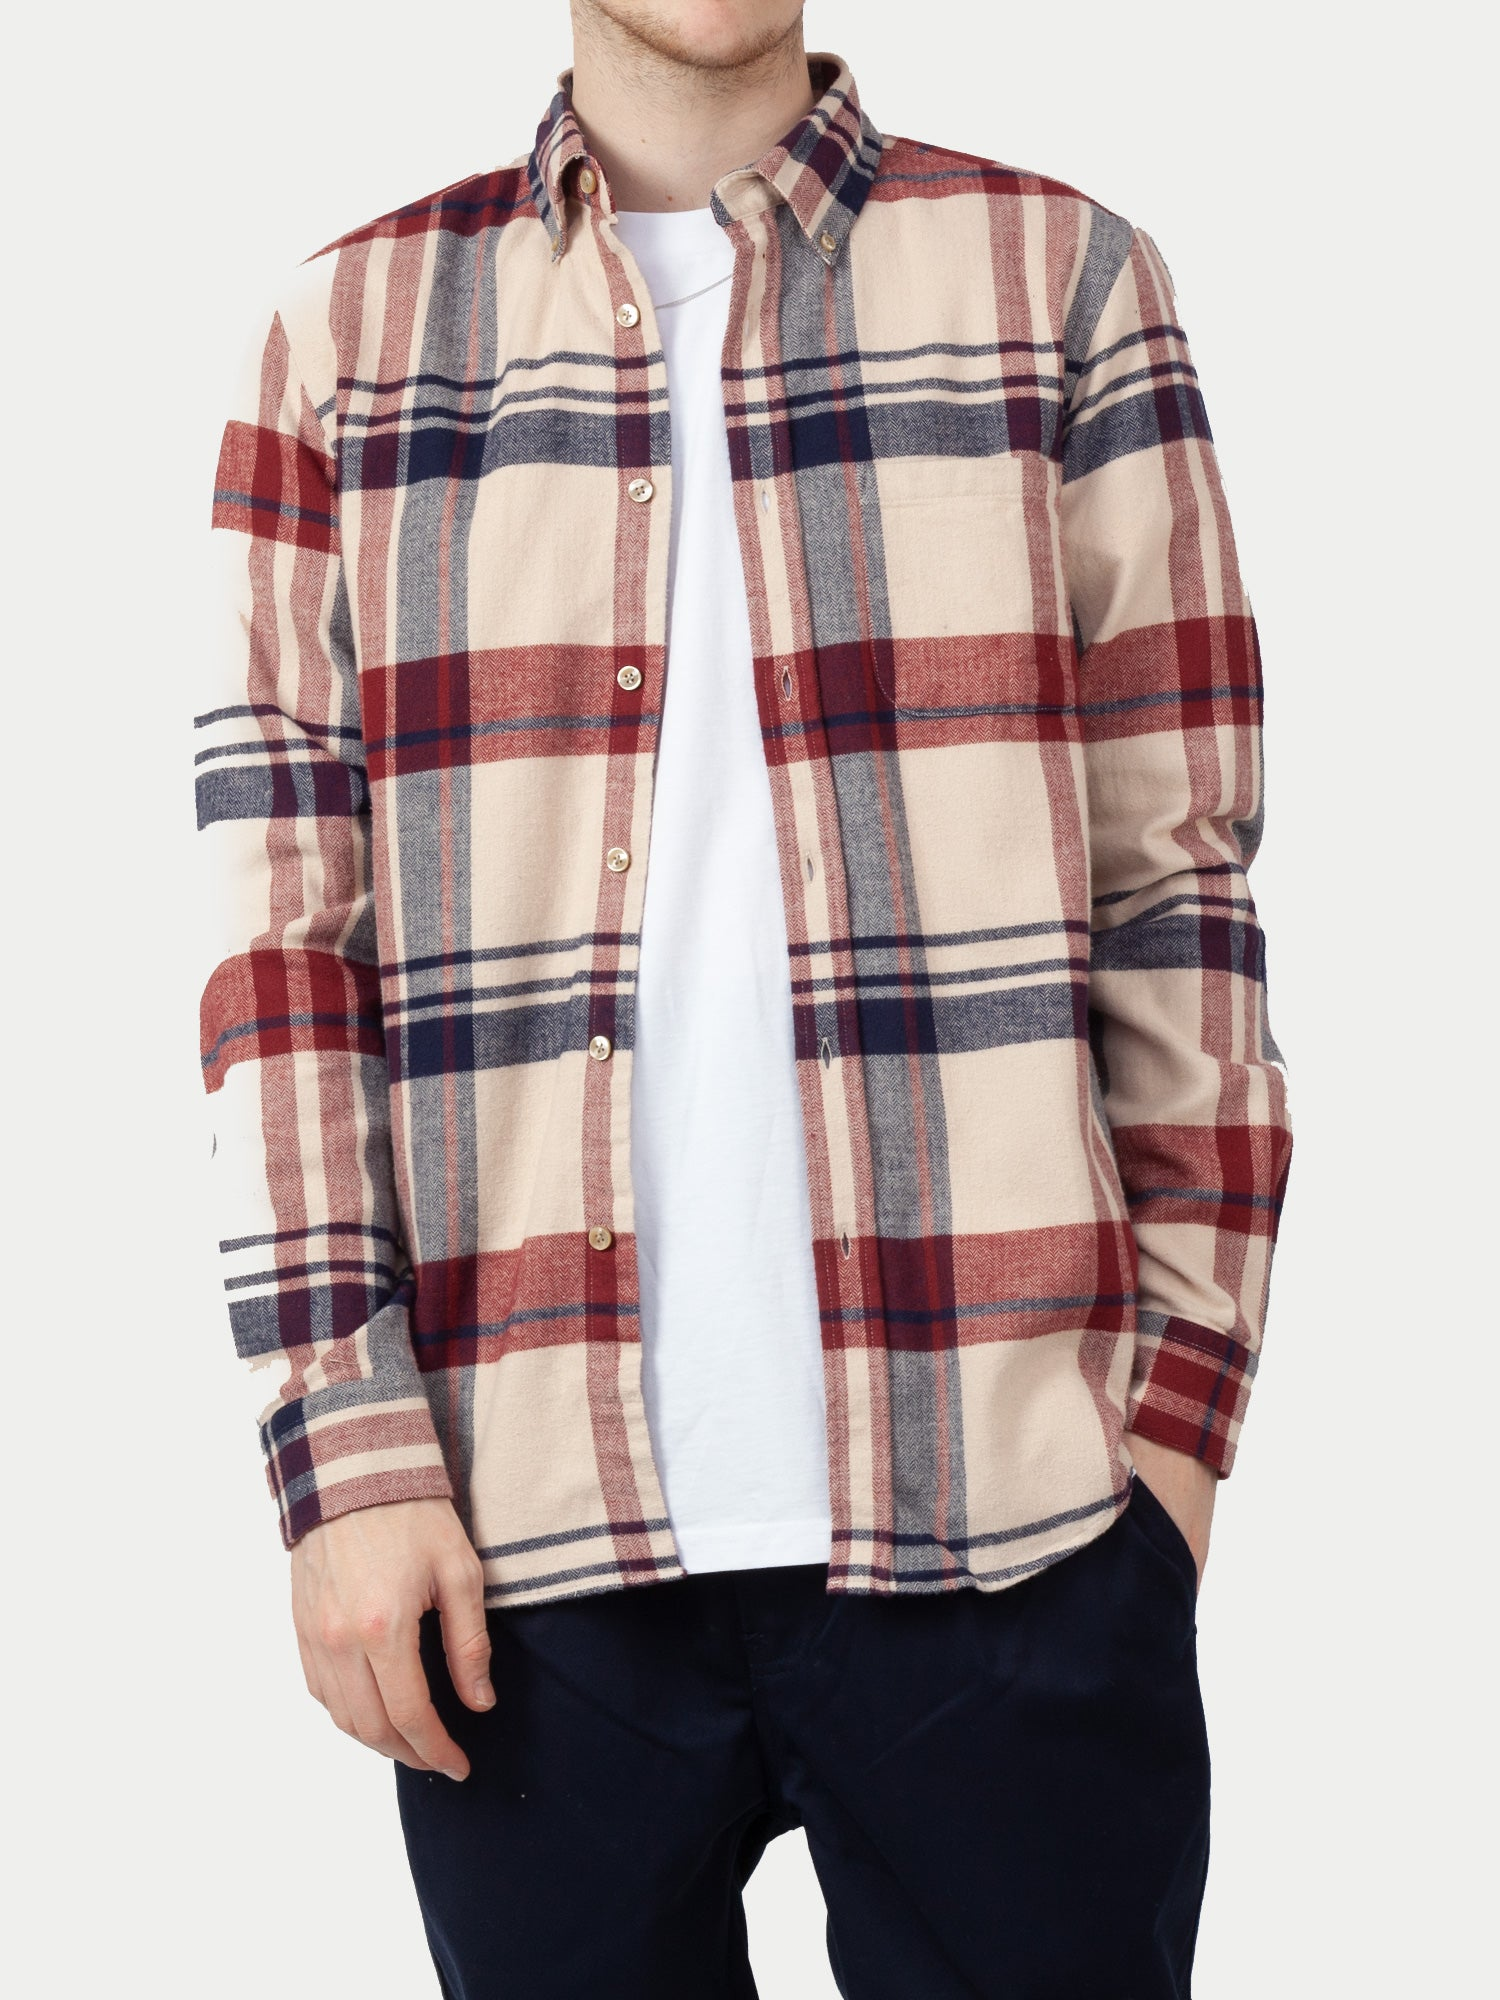 Portuguese Flannel Coachella Shirt (Red & Blue) m1